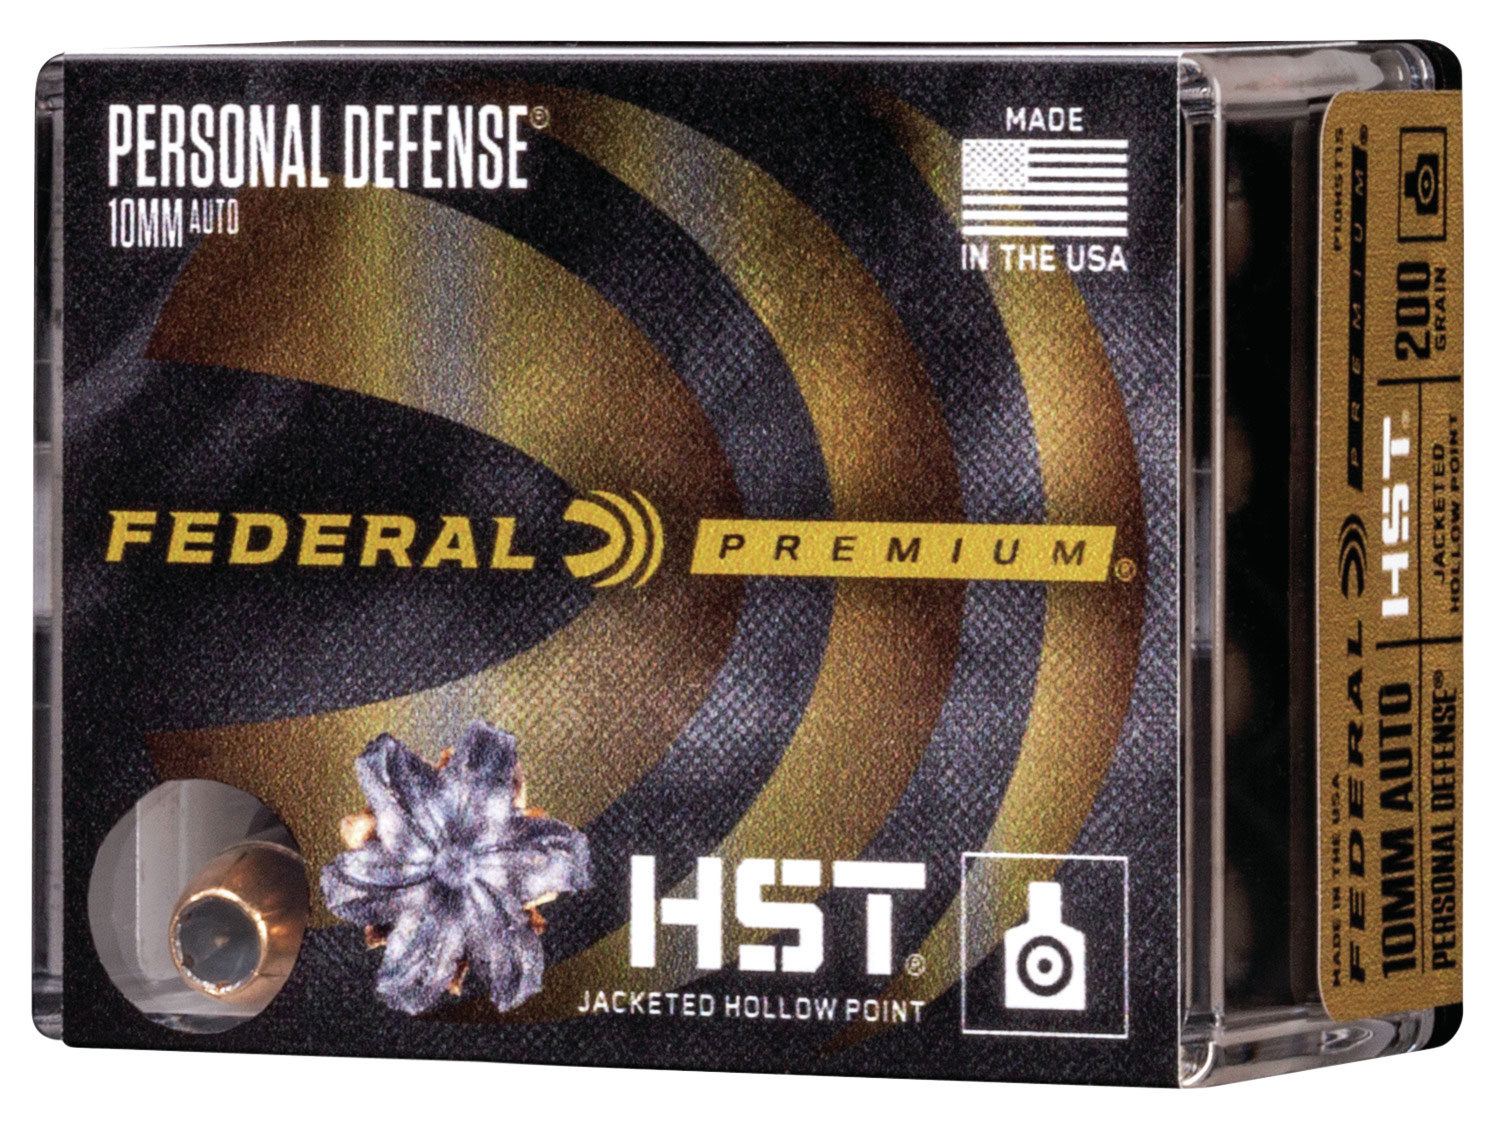 Federal P10HST1S Personal Defense  10mm Auto 200 GR HSTJHP 20 Bx/ 10 Cs